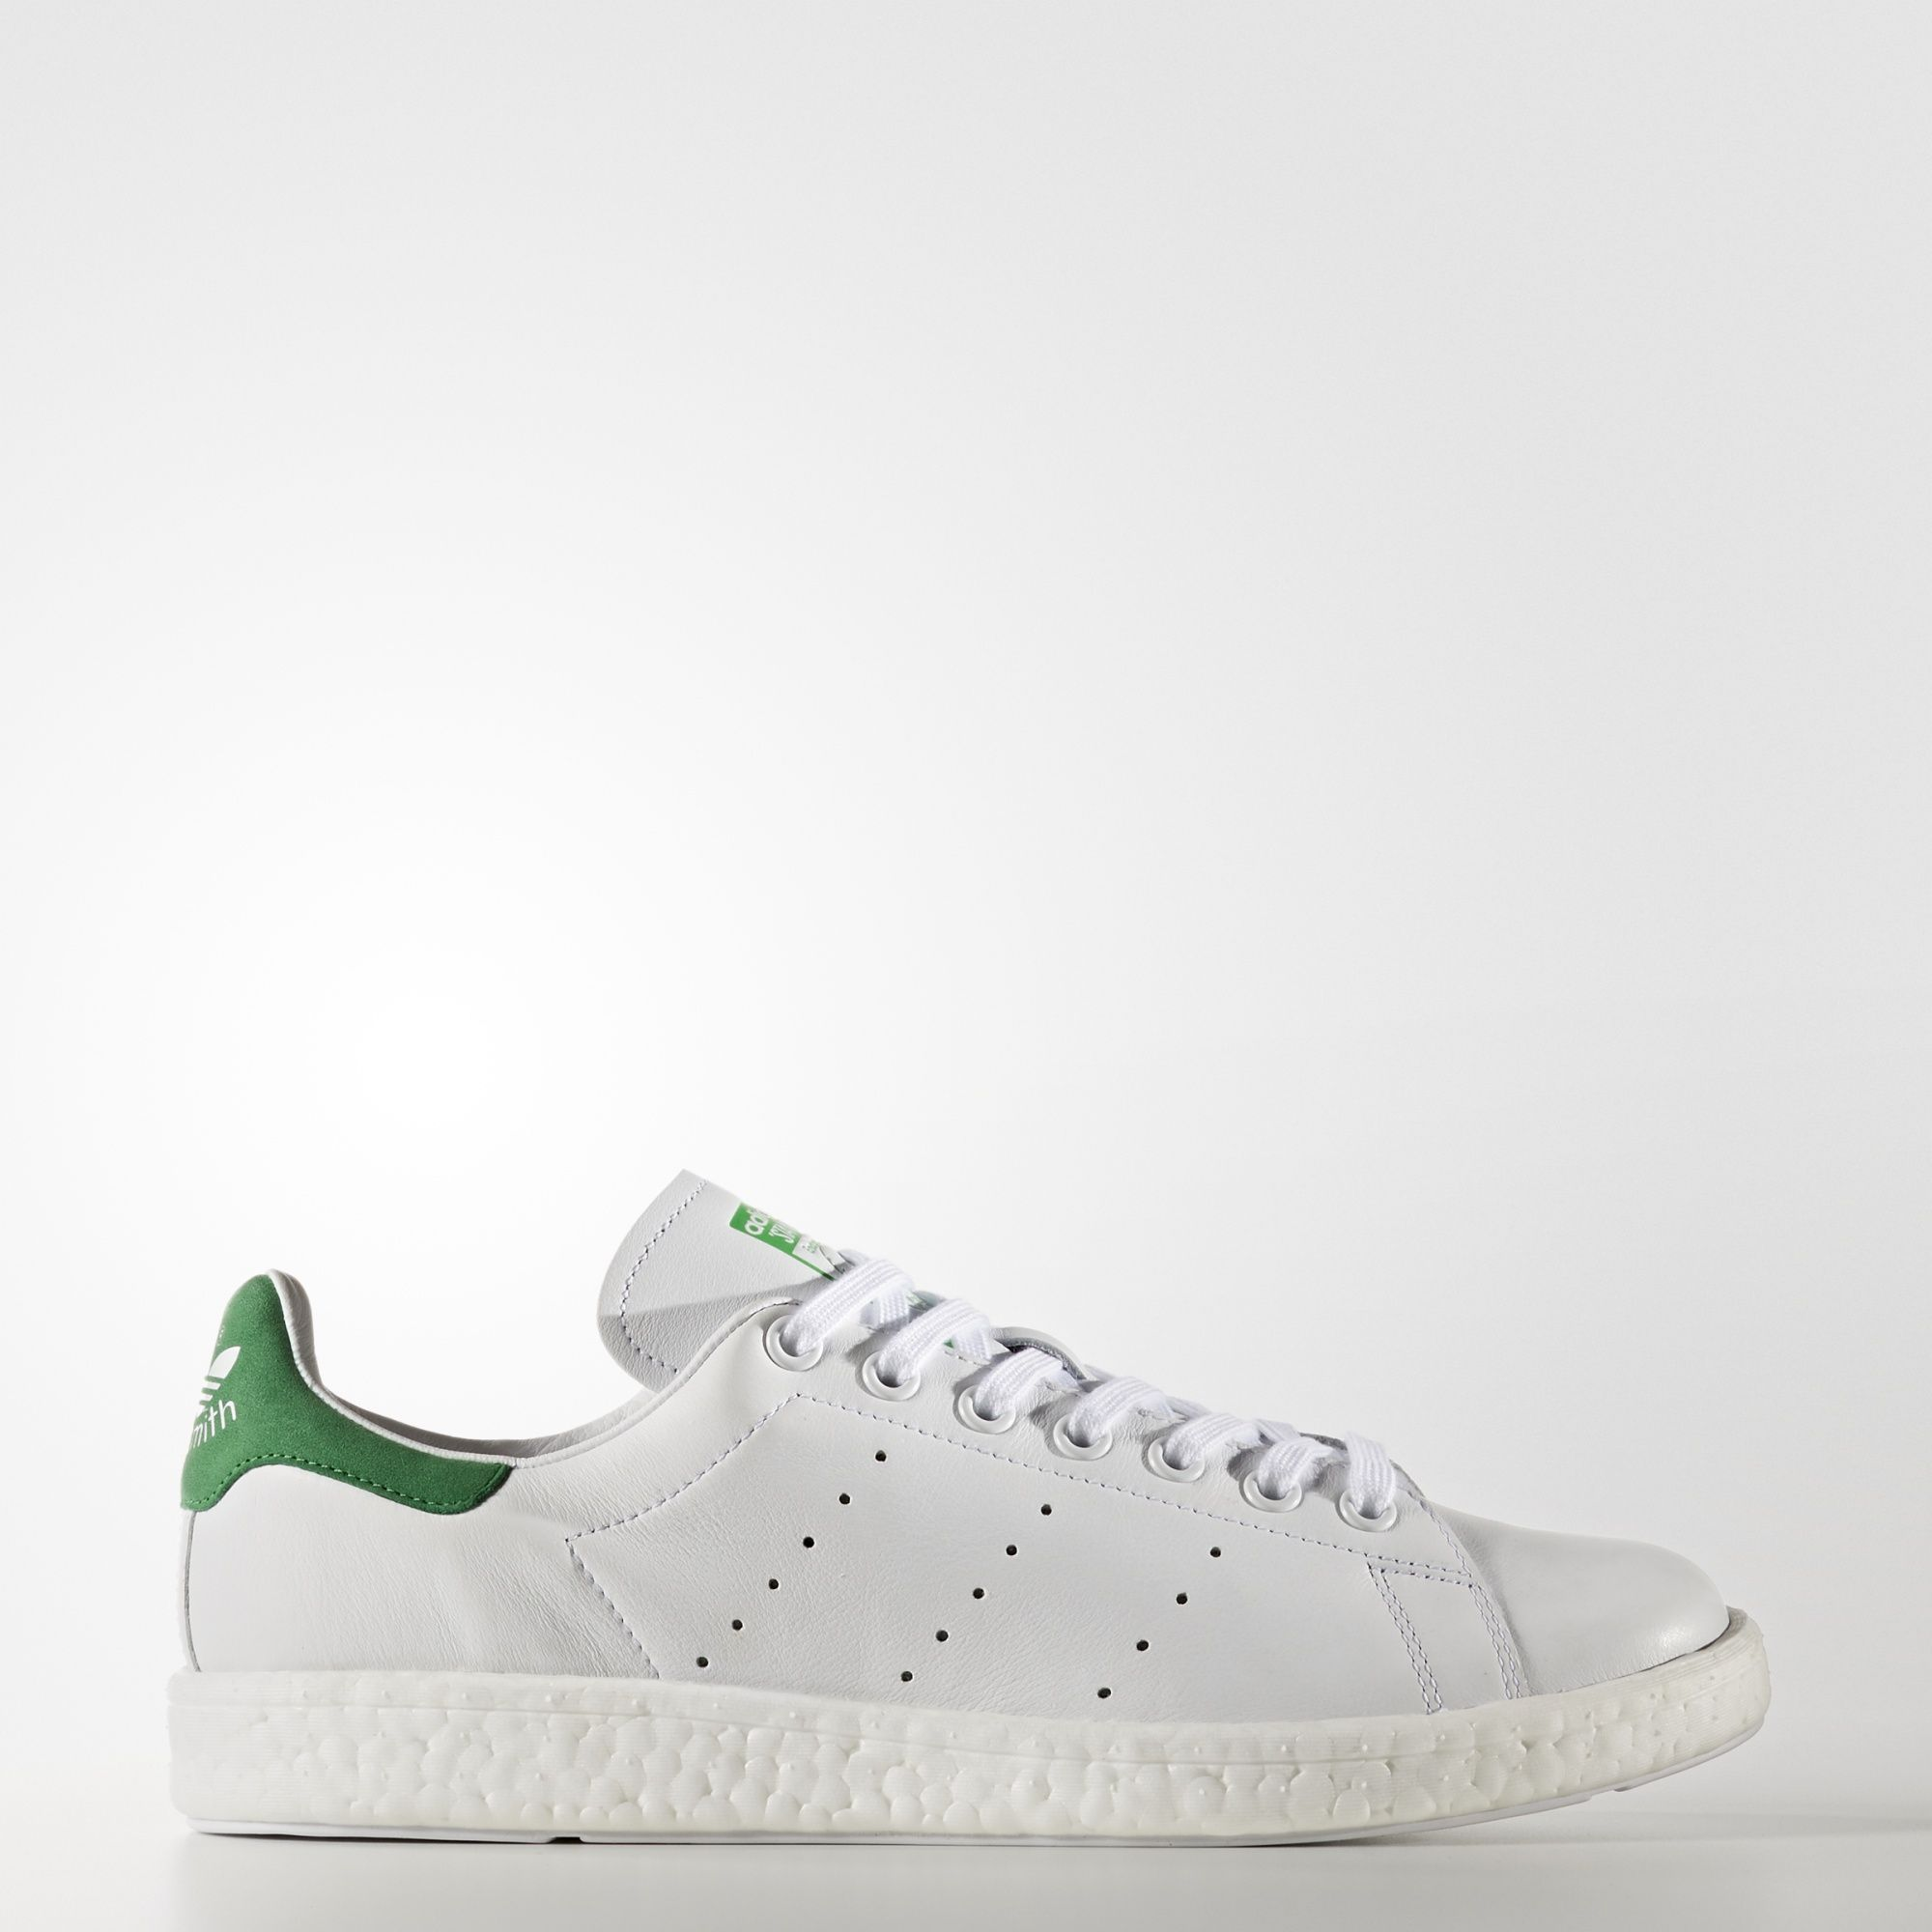 timeless design 46ee8 6b4e0 The first-ever leather tennis shoe, the Stan Smith quickly ...